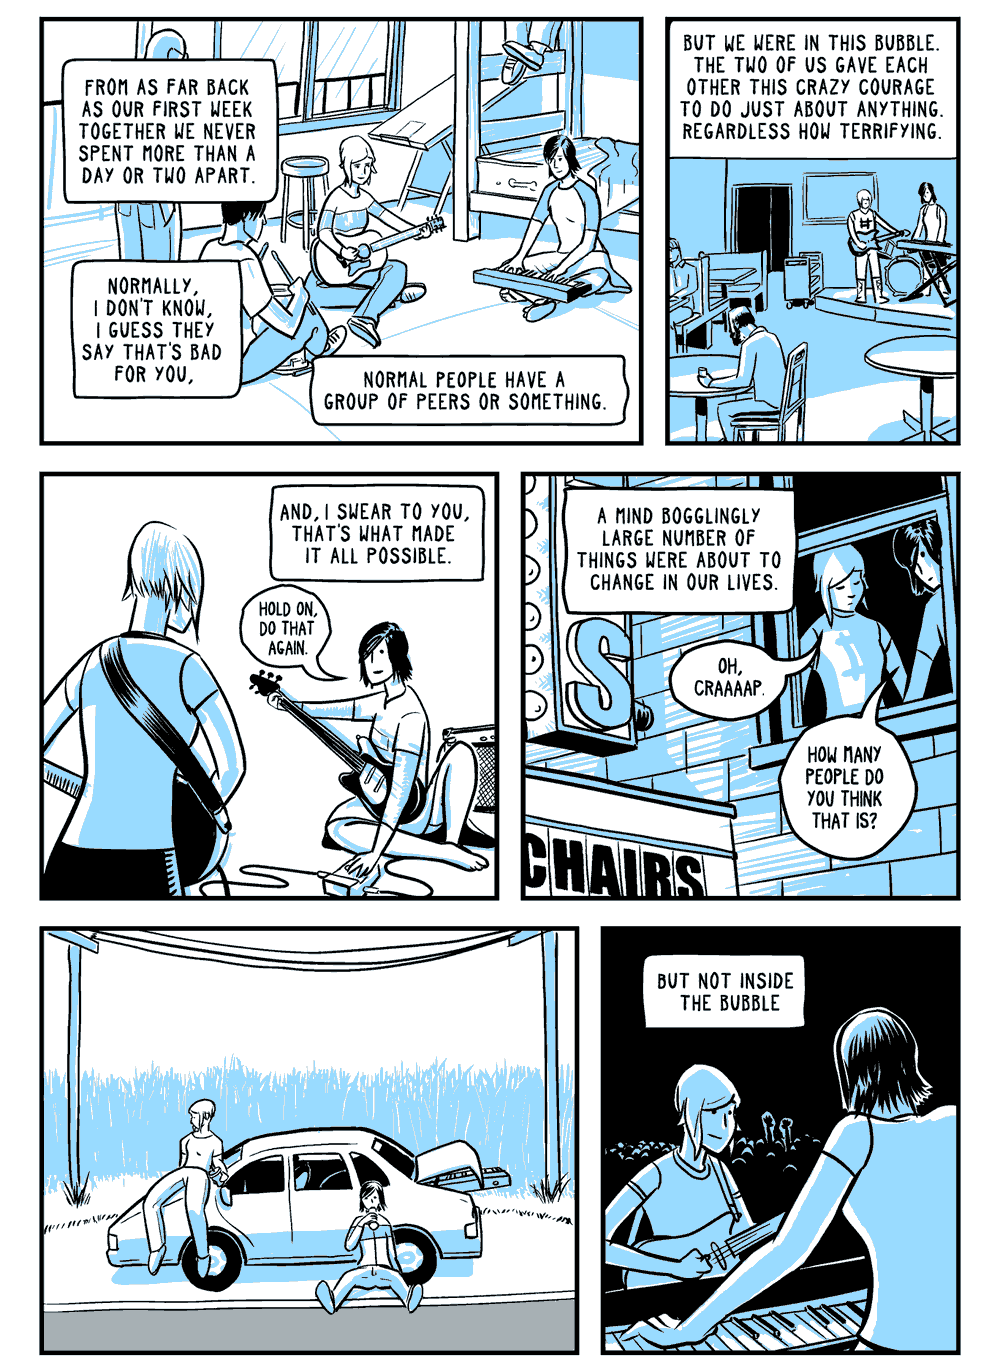 The Chairs' Hiatus0033.png